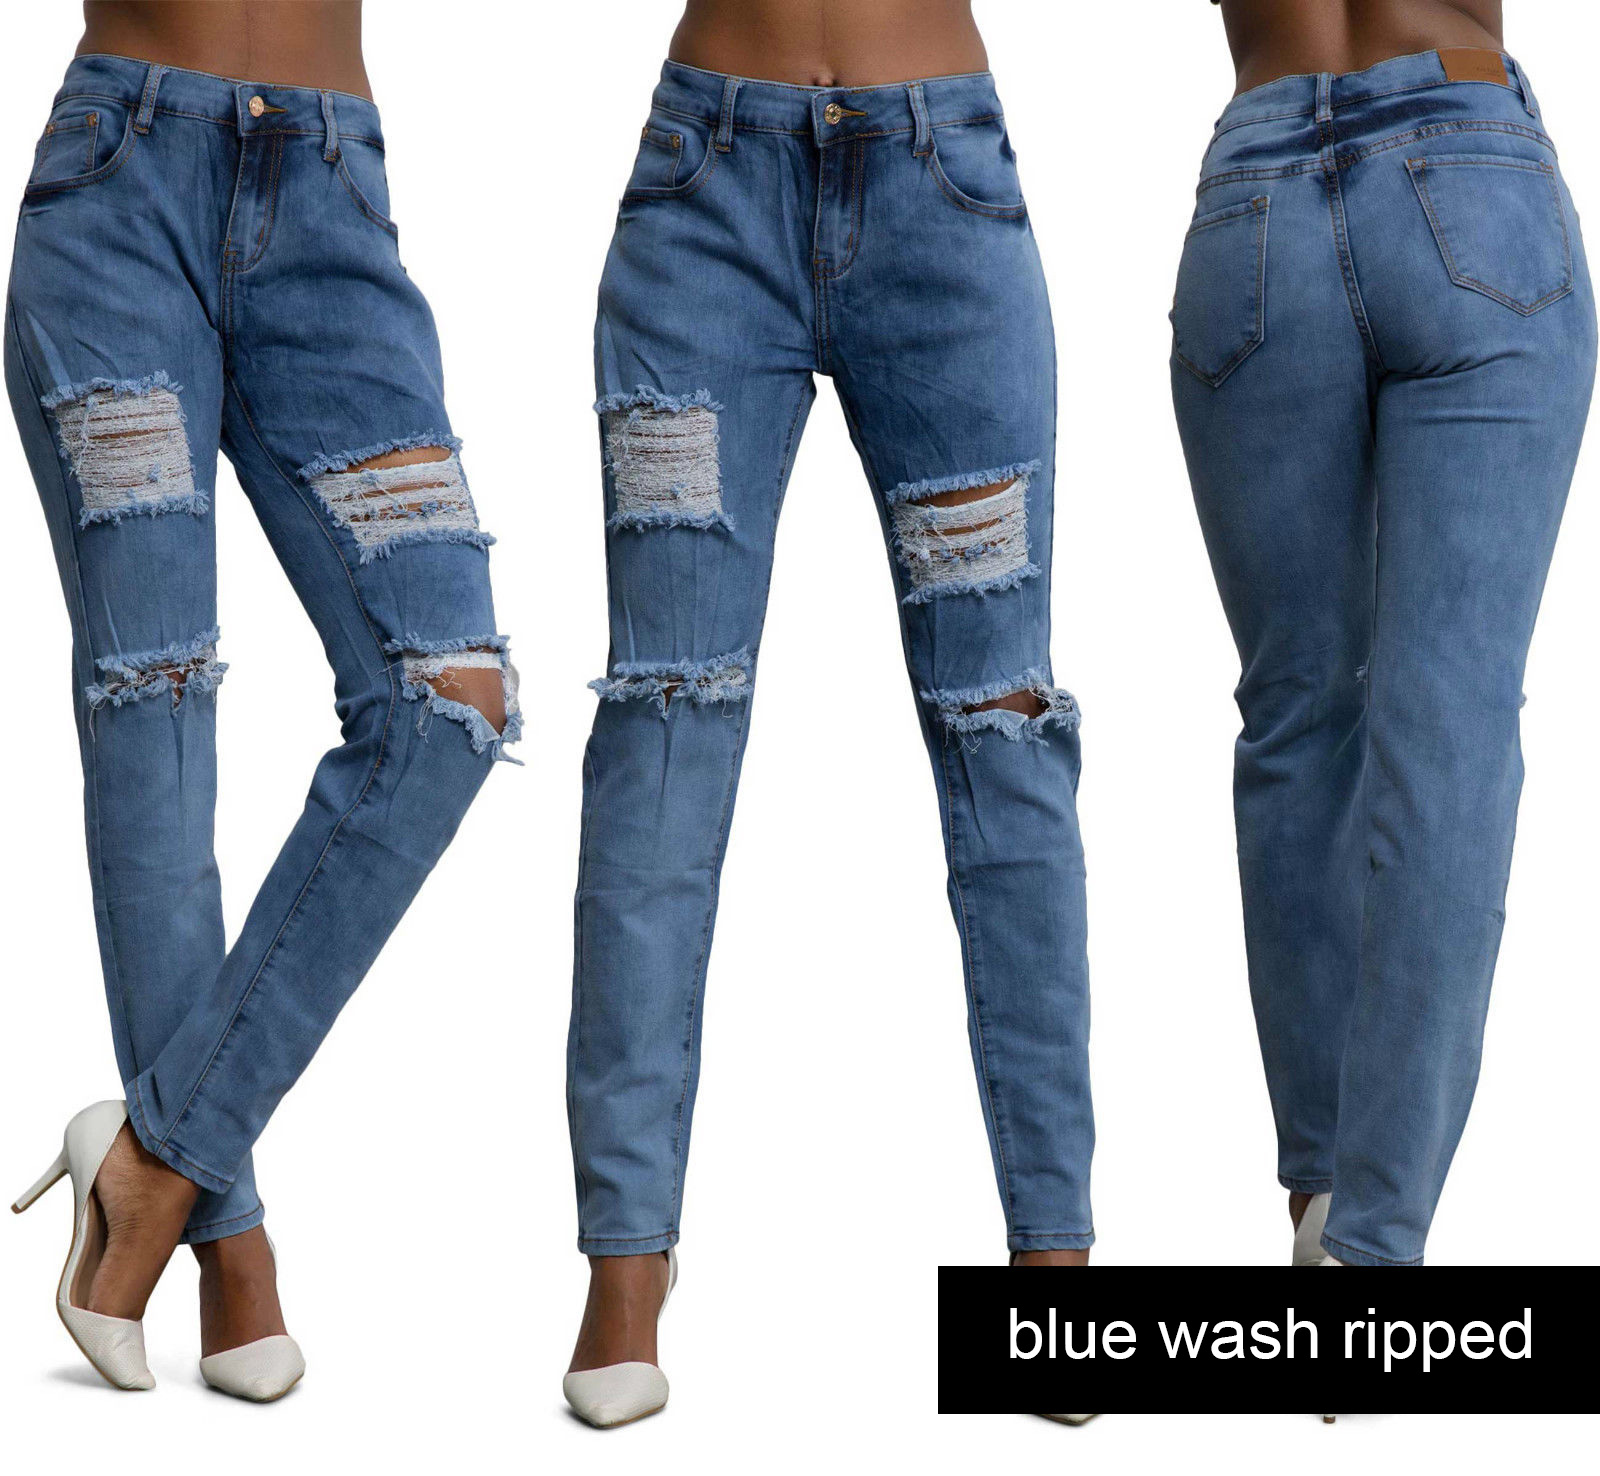 Best prices on Just my size jeans stretch plus size in Women's Jeans online. Visit Bizrate to find the best deals on top brands. Read reviews on Clothing & Accessories merchants and buy with confidence.